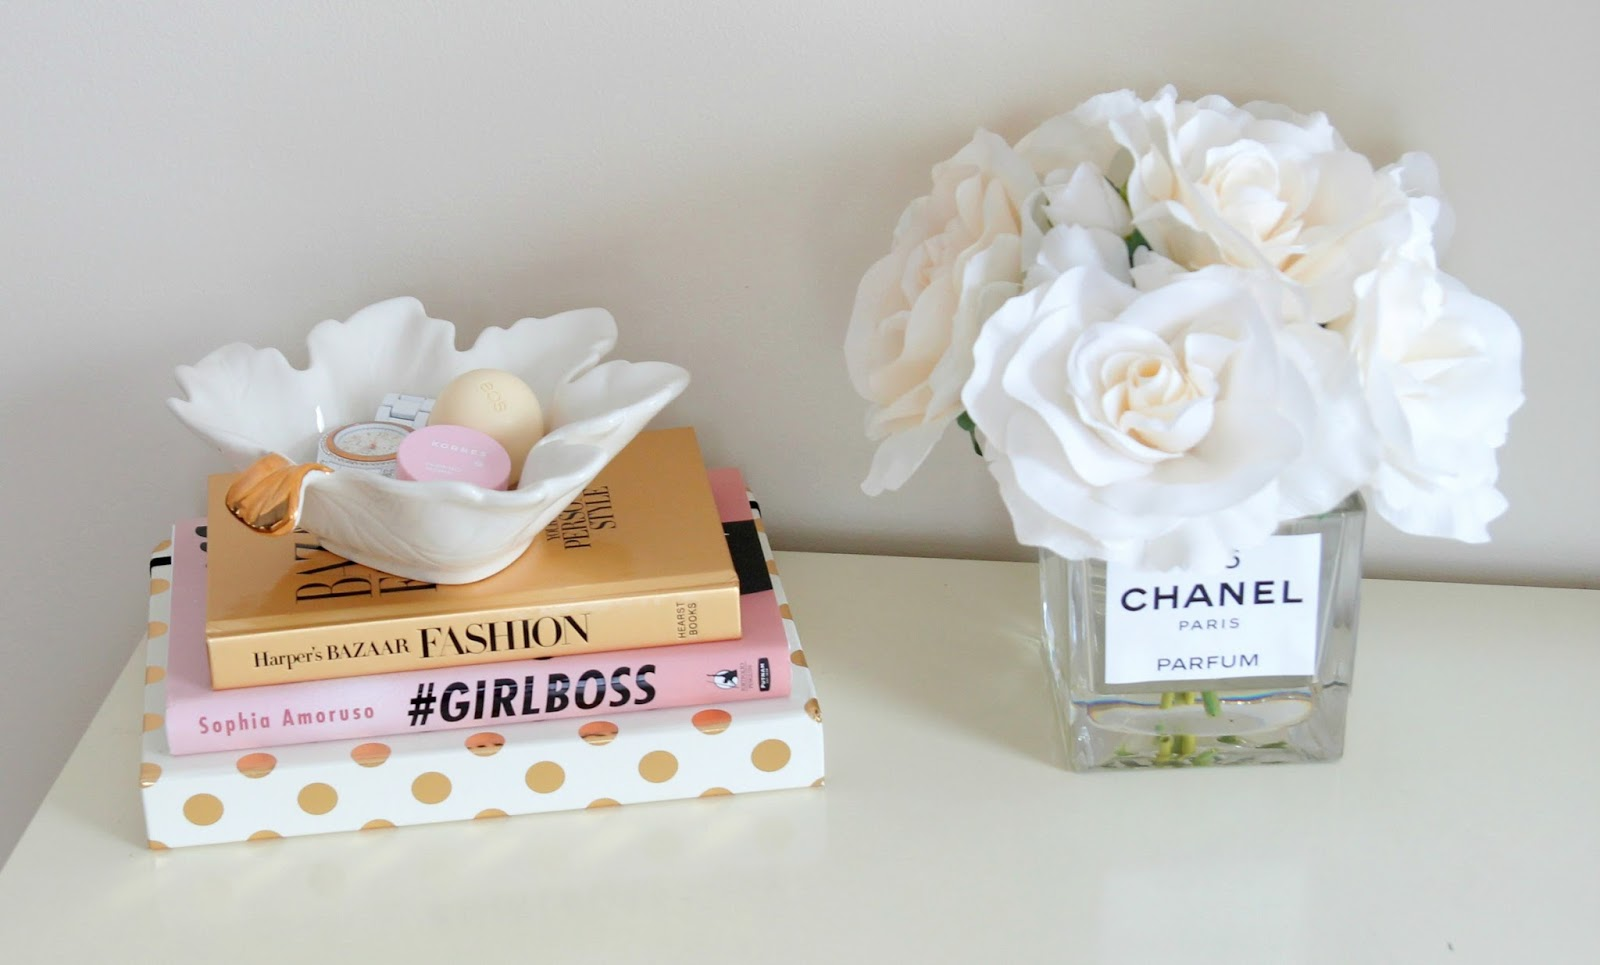 Girly Desk - DIY Desk Decor - DIY Chanel Decor - Fashion Books - TJ Maxx Decor - Kate Spade Polka Dot Agenda